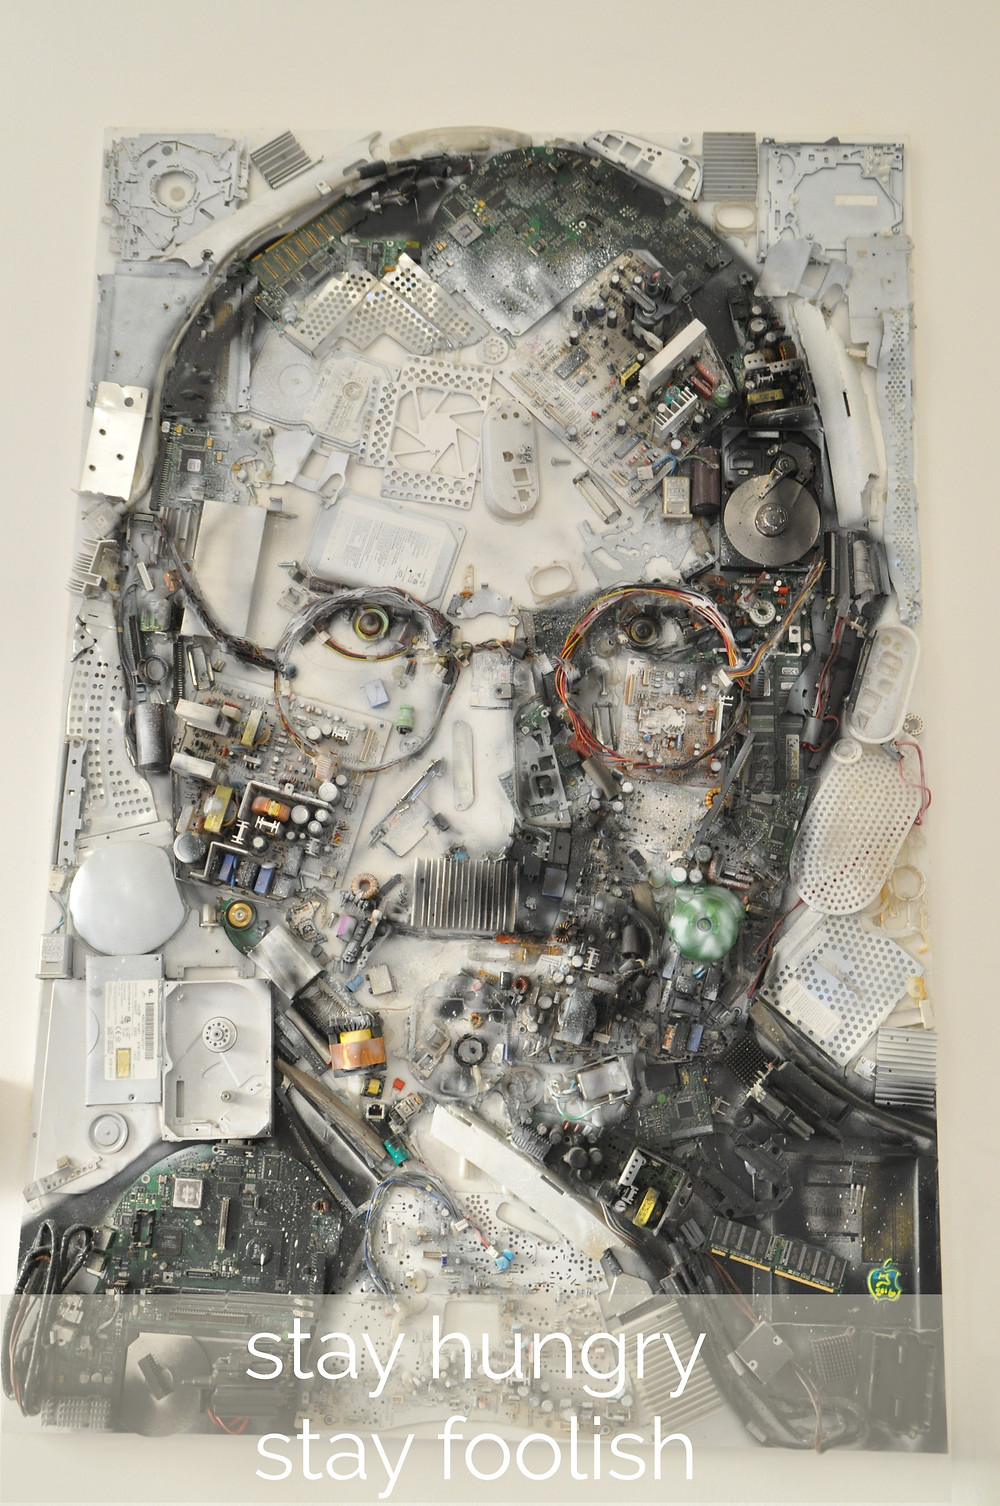 Steve Jobs portrait composed from Mac parts.